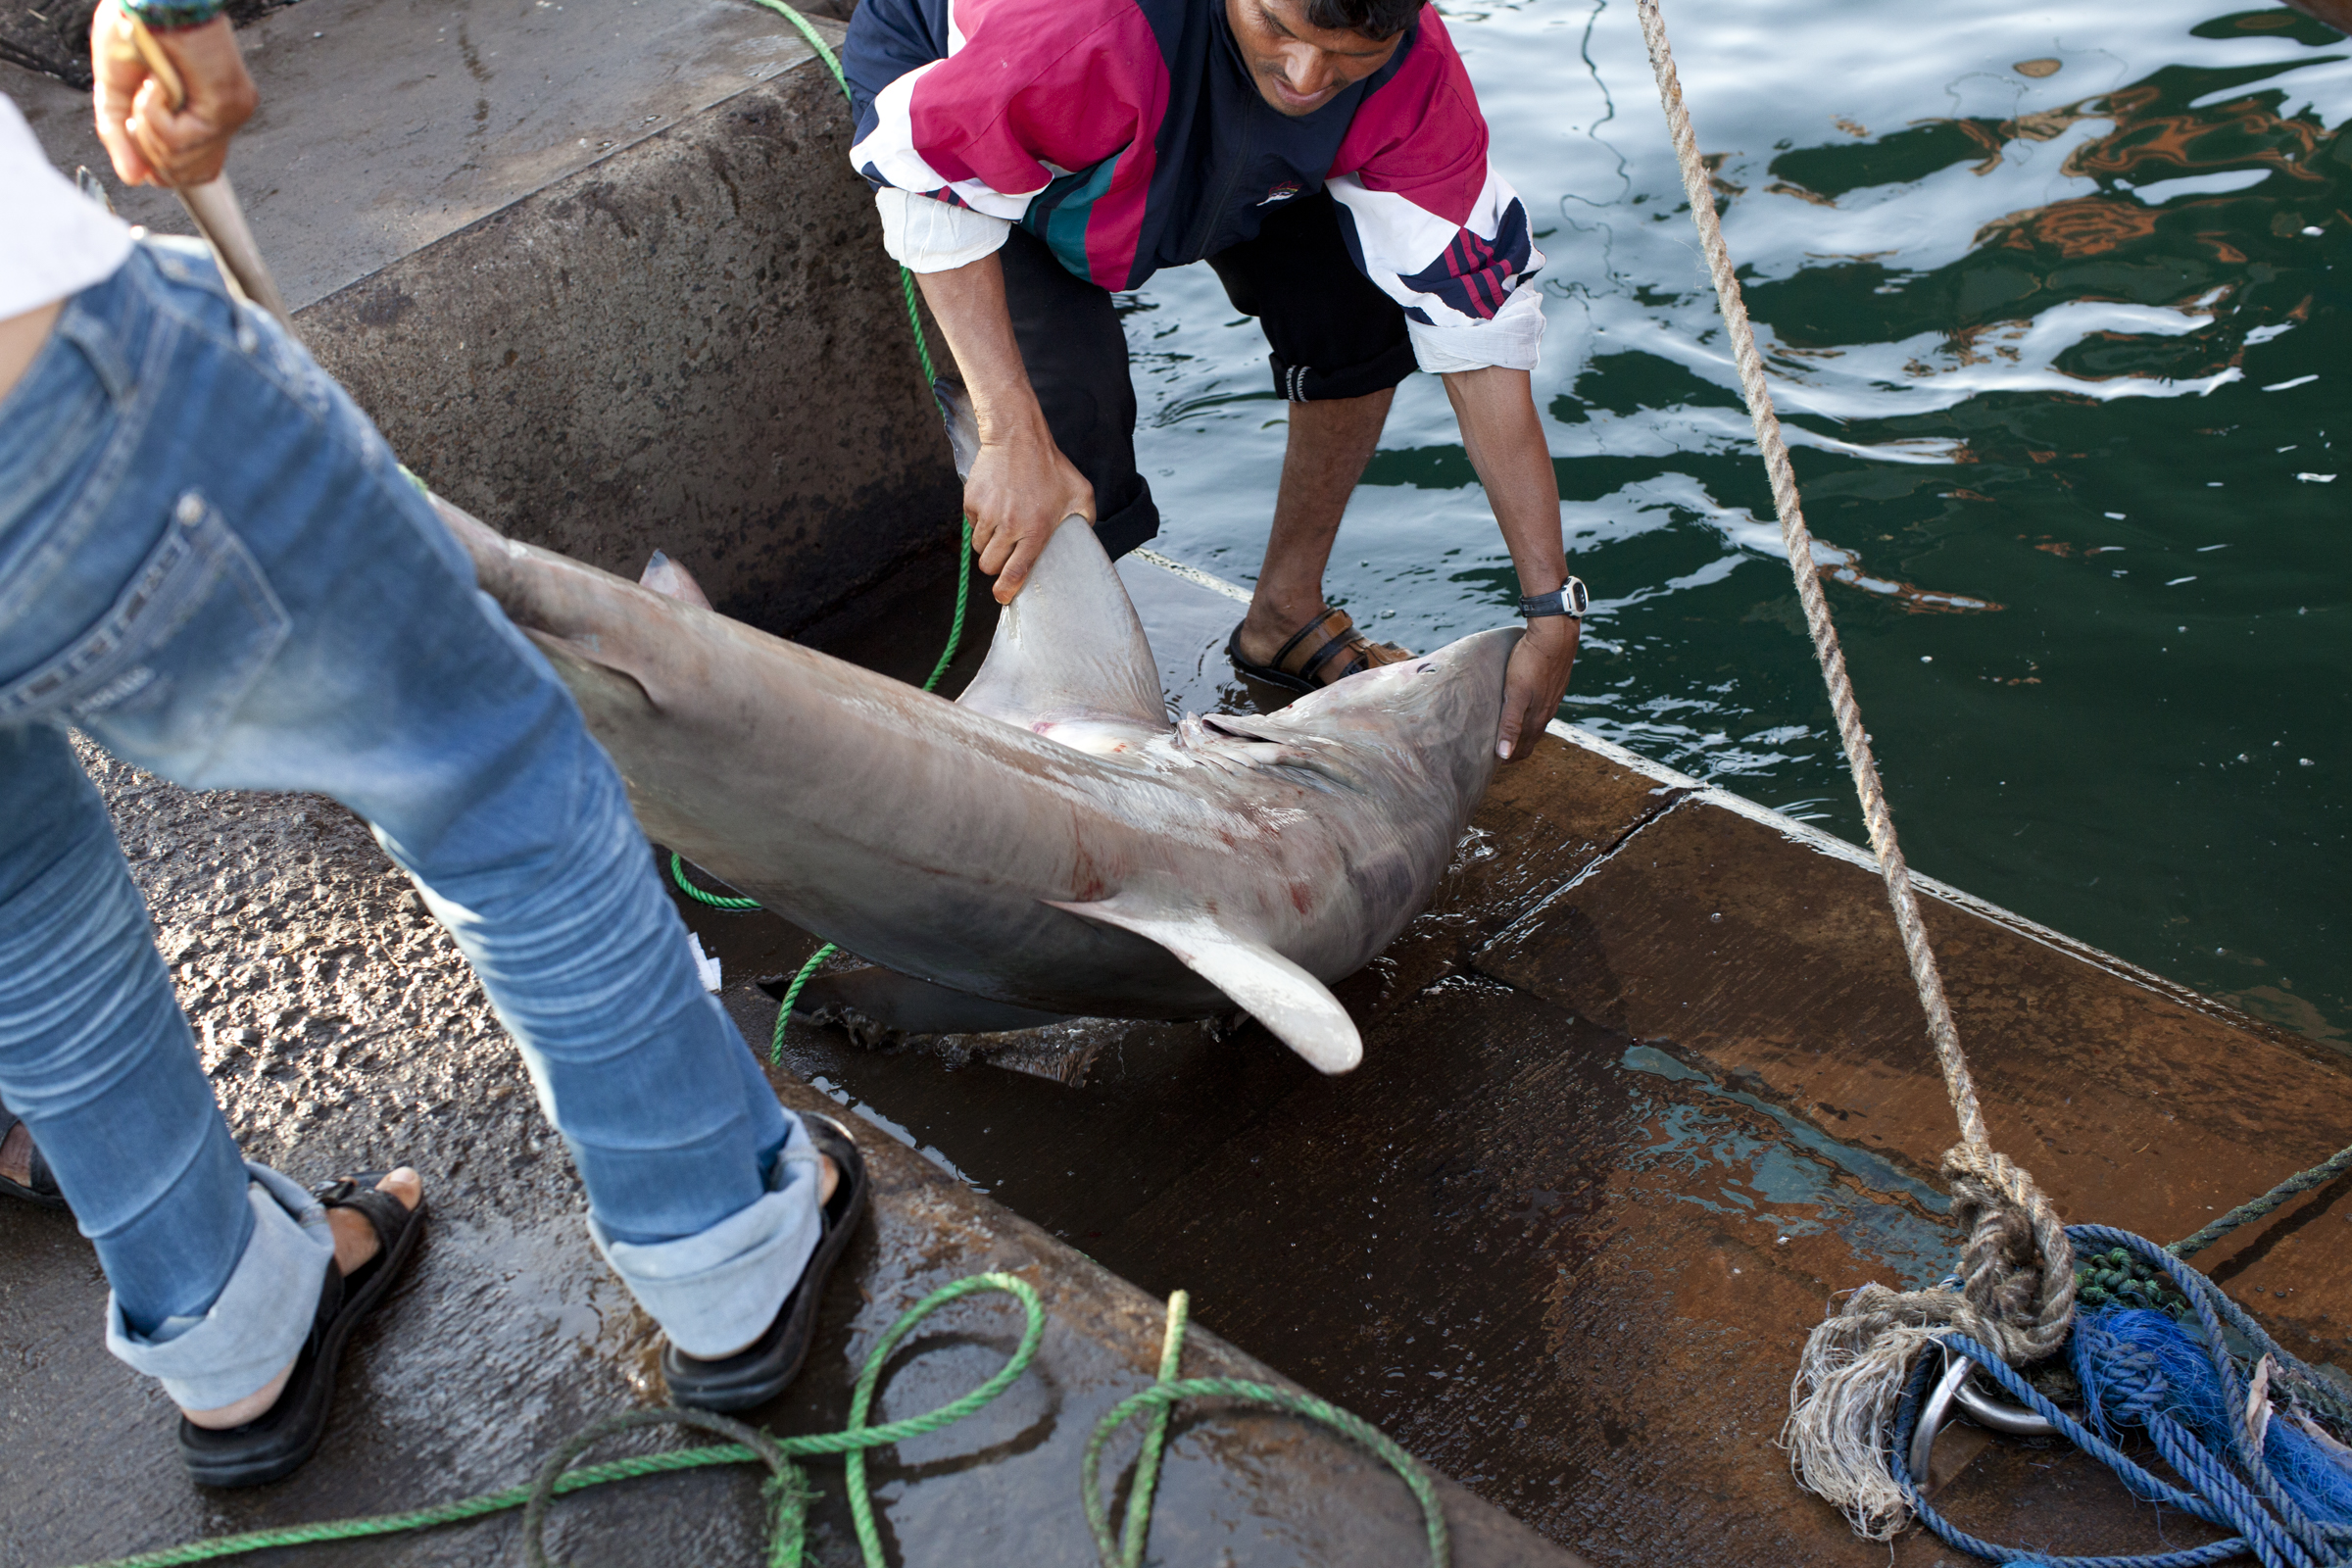 shark fishing, endagered species, abu dhabi, fisherman, illegal fishing-028.jpg